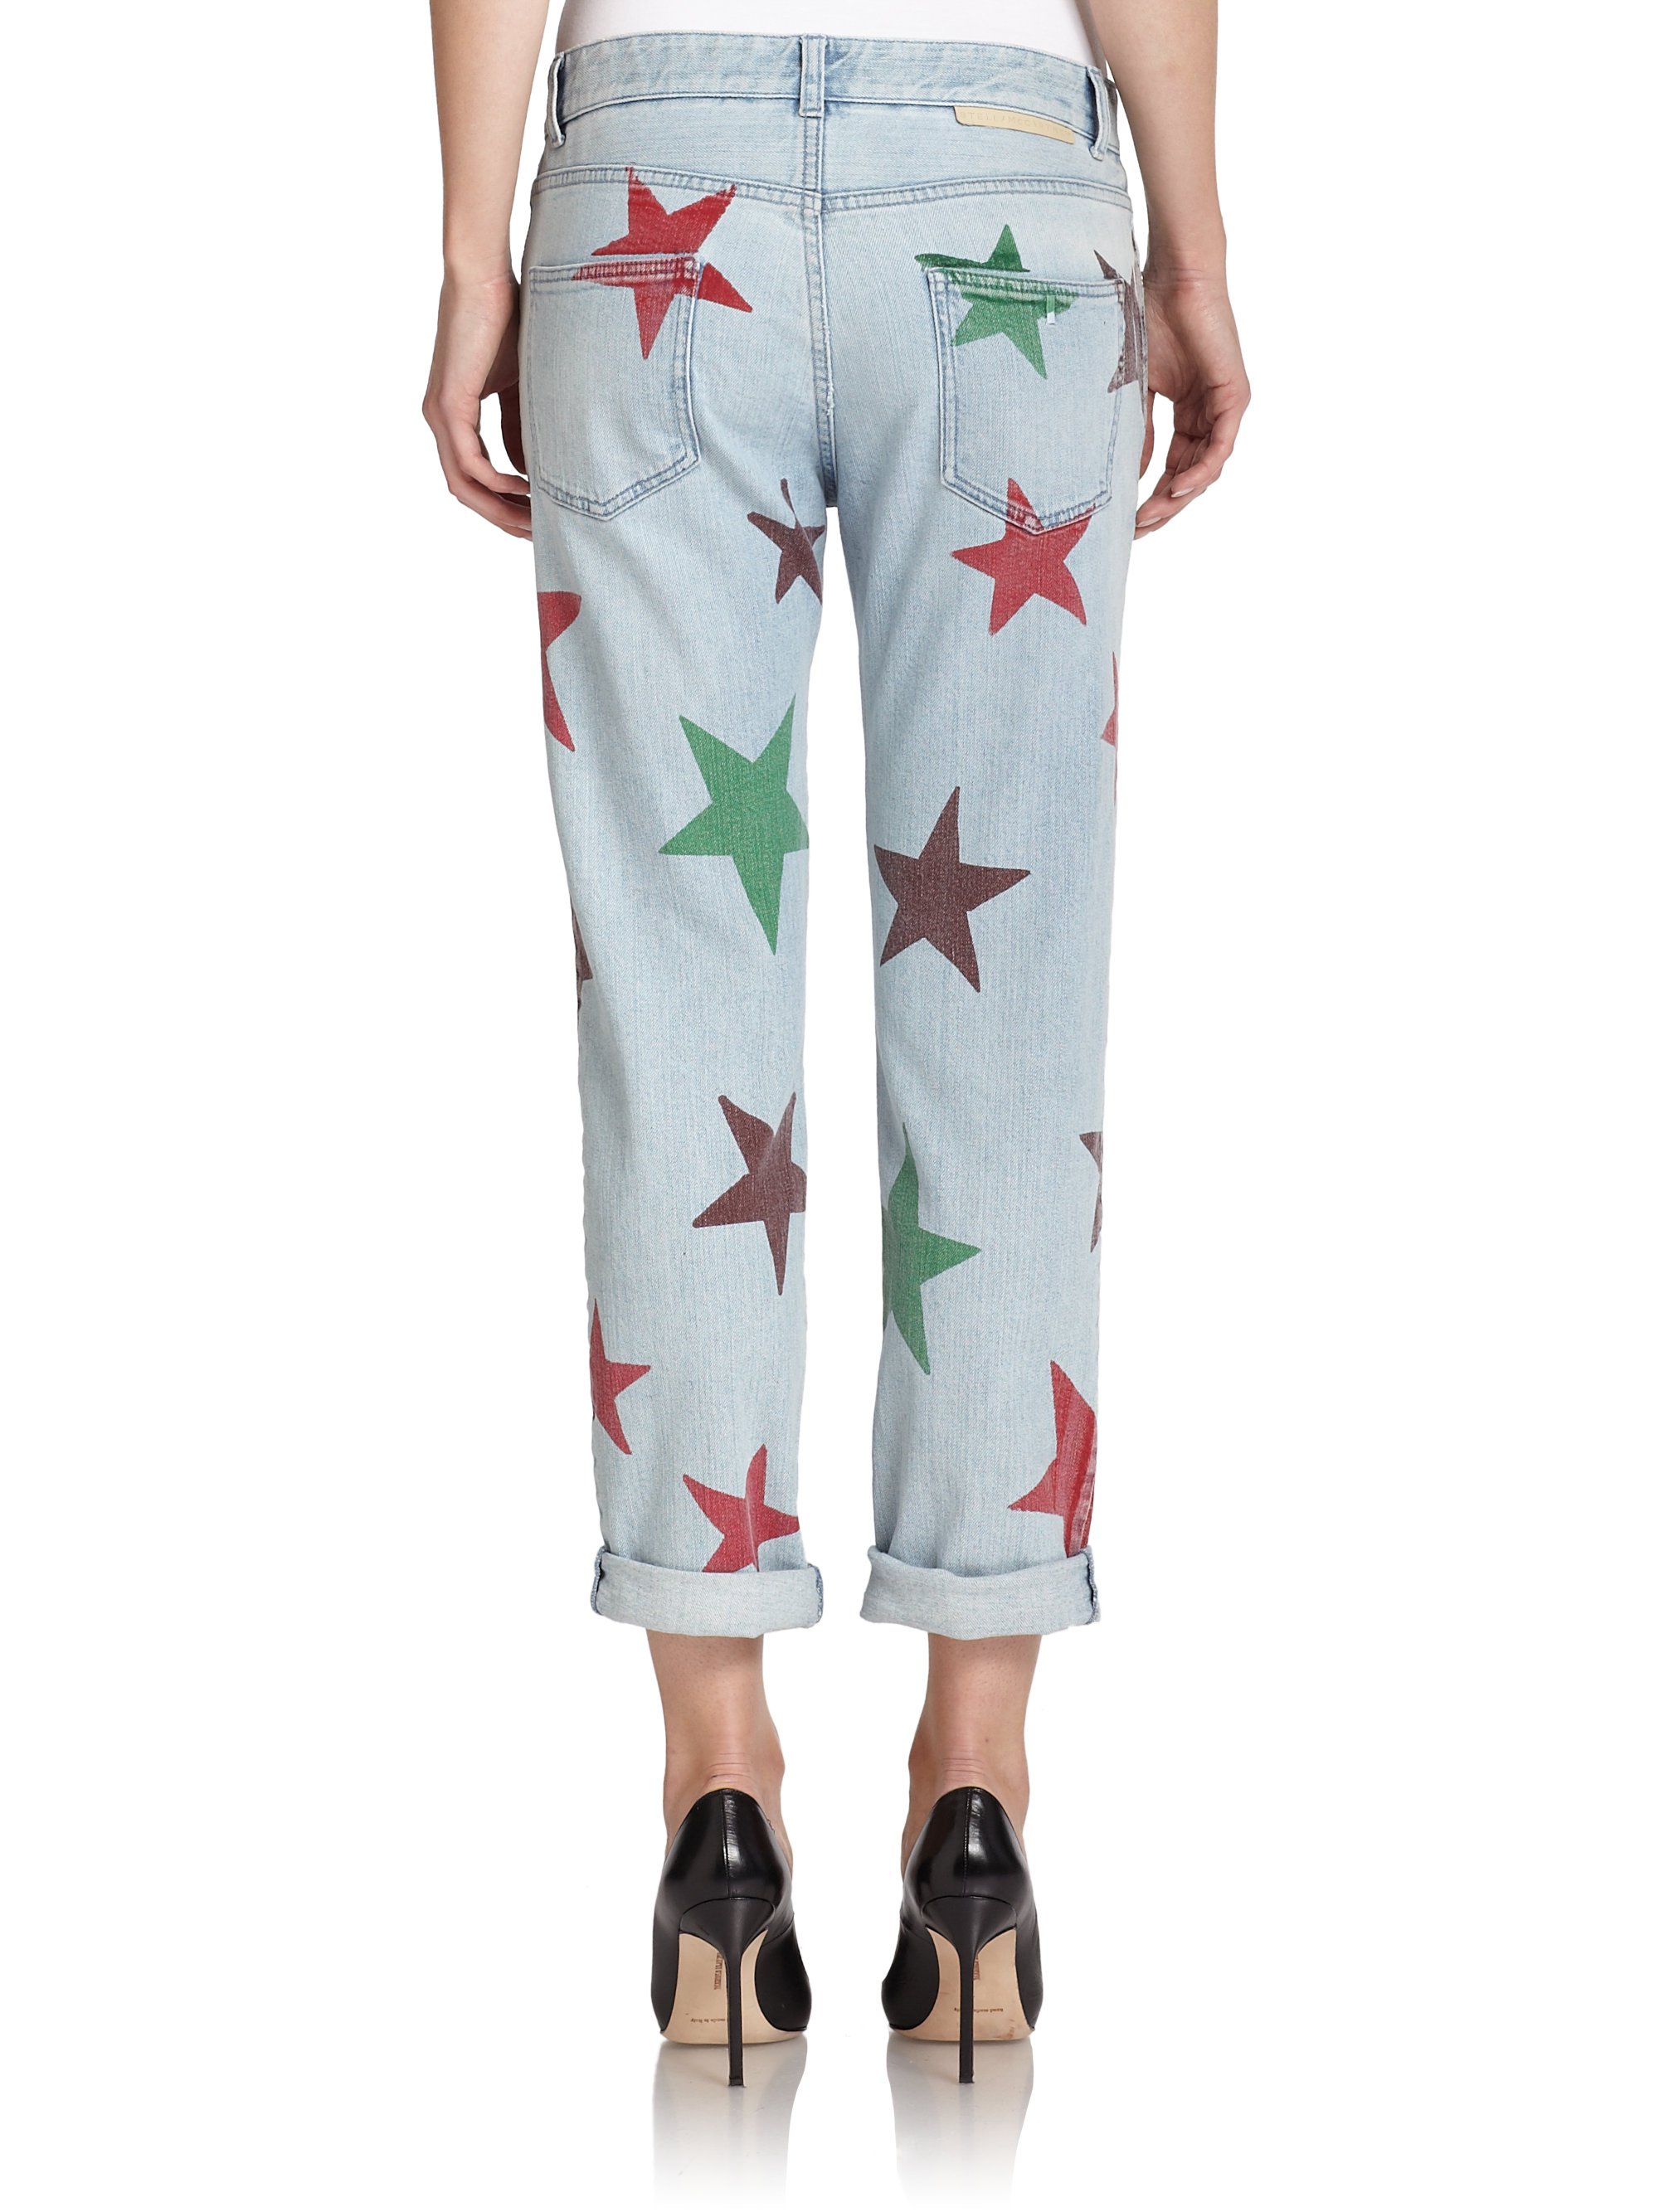 Stella mccartney Star-print Boyfriend Jeans in Blue | Lyst